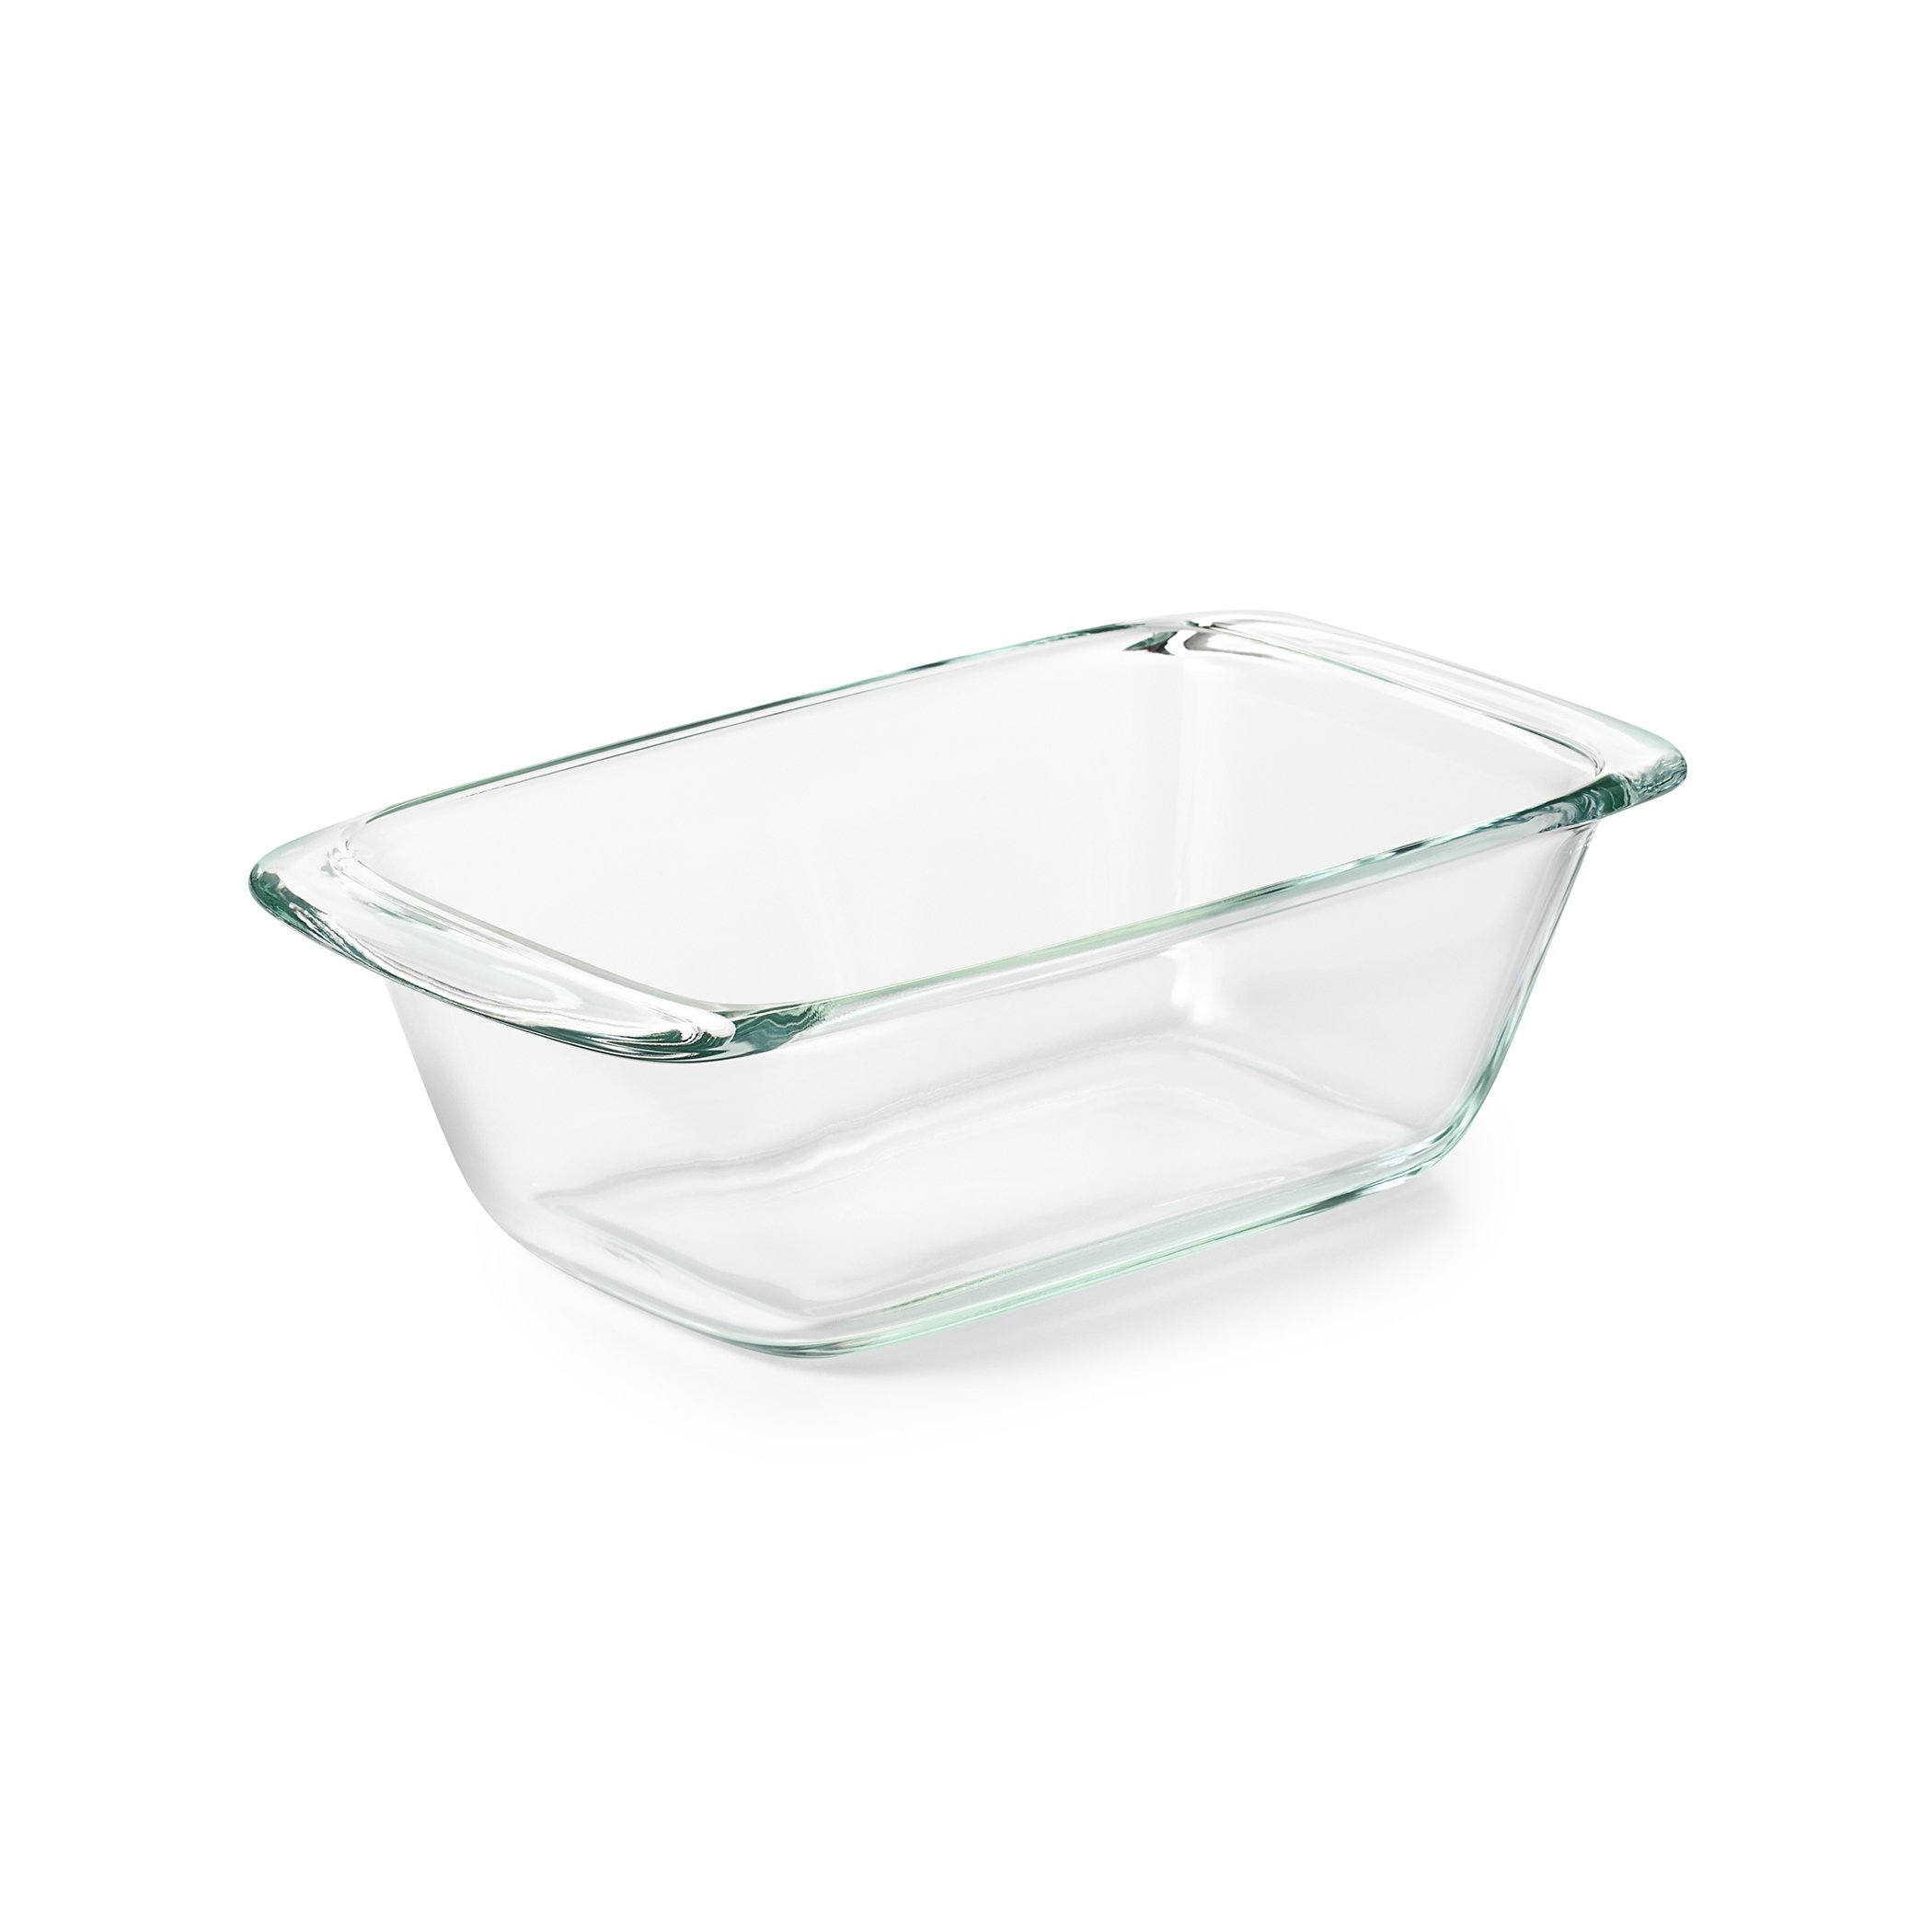 OXO Good Grips 8 Piece Freezer-to-Oven Safe Glass Bake, Serve and Store Set by OXO (Image #11)